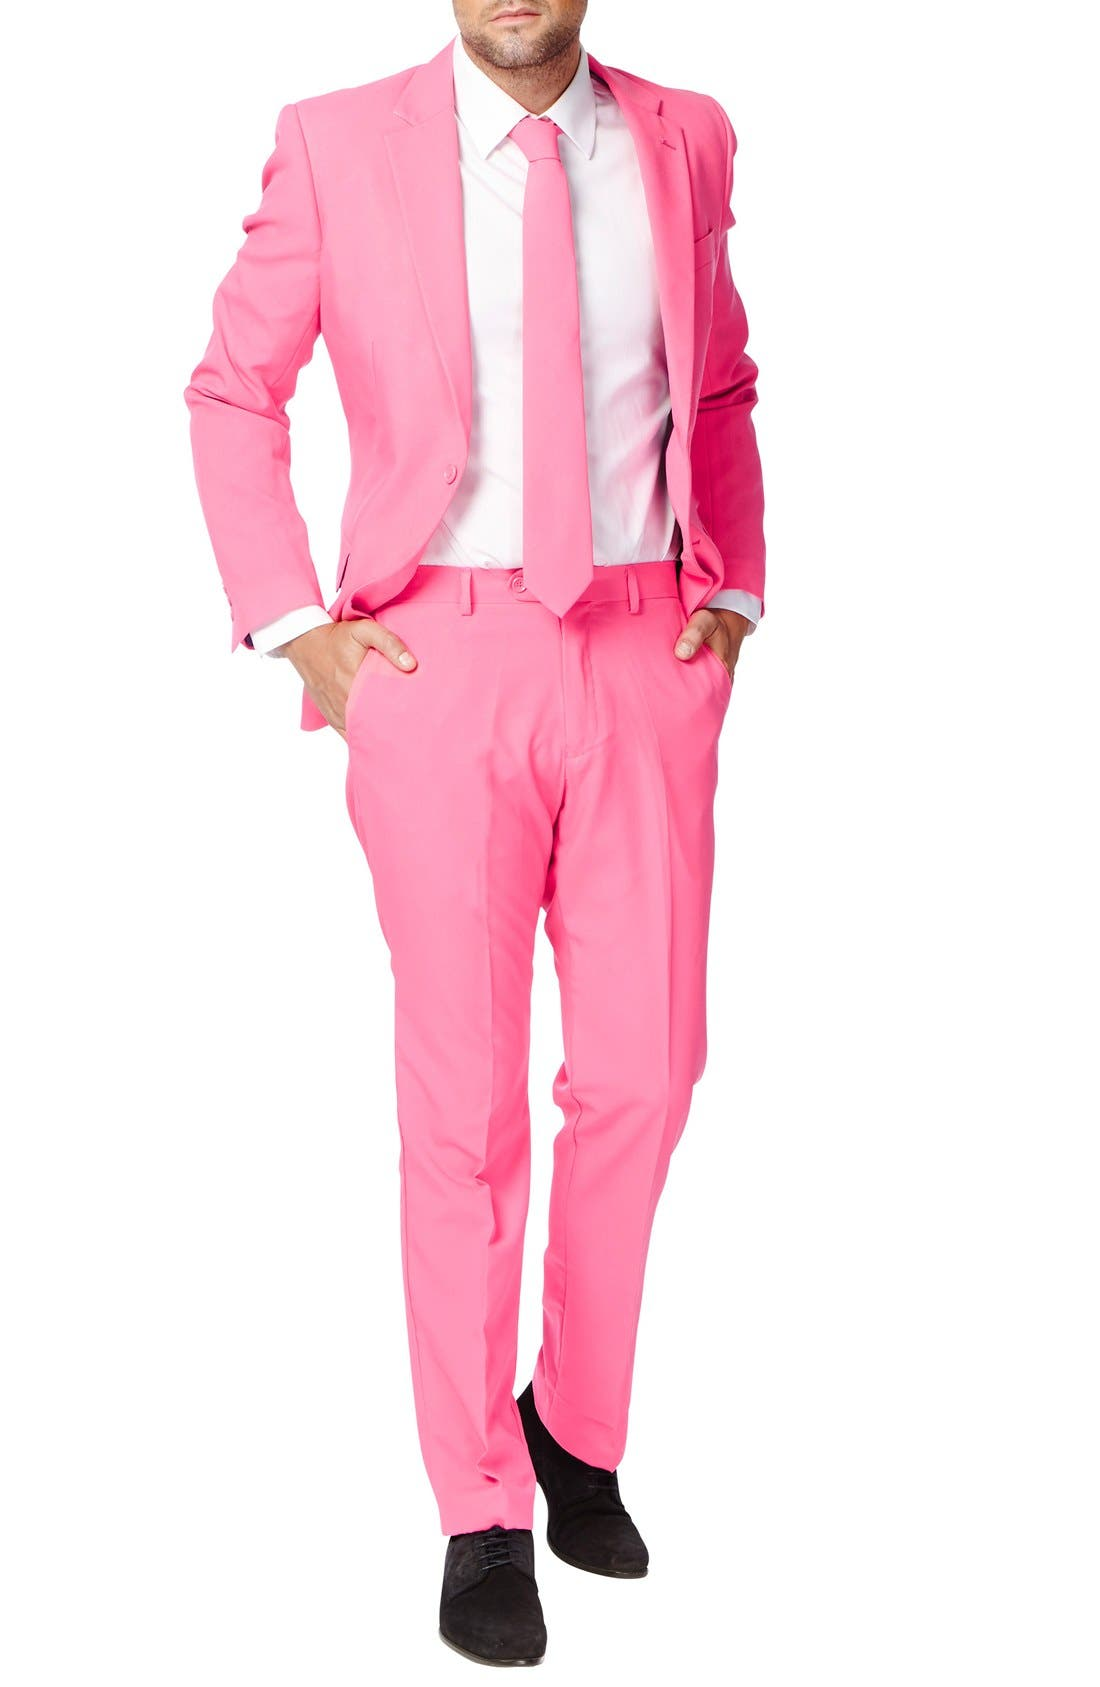 'Mr. Pink' Trim Fit Two-Piece Suit with Tie,                         Main,                         color, Pink